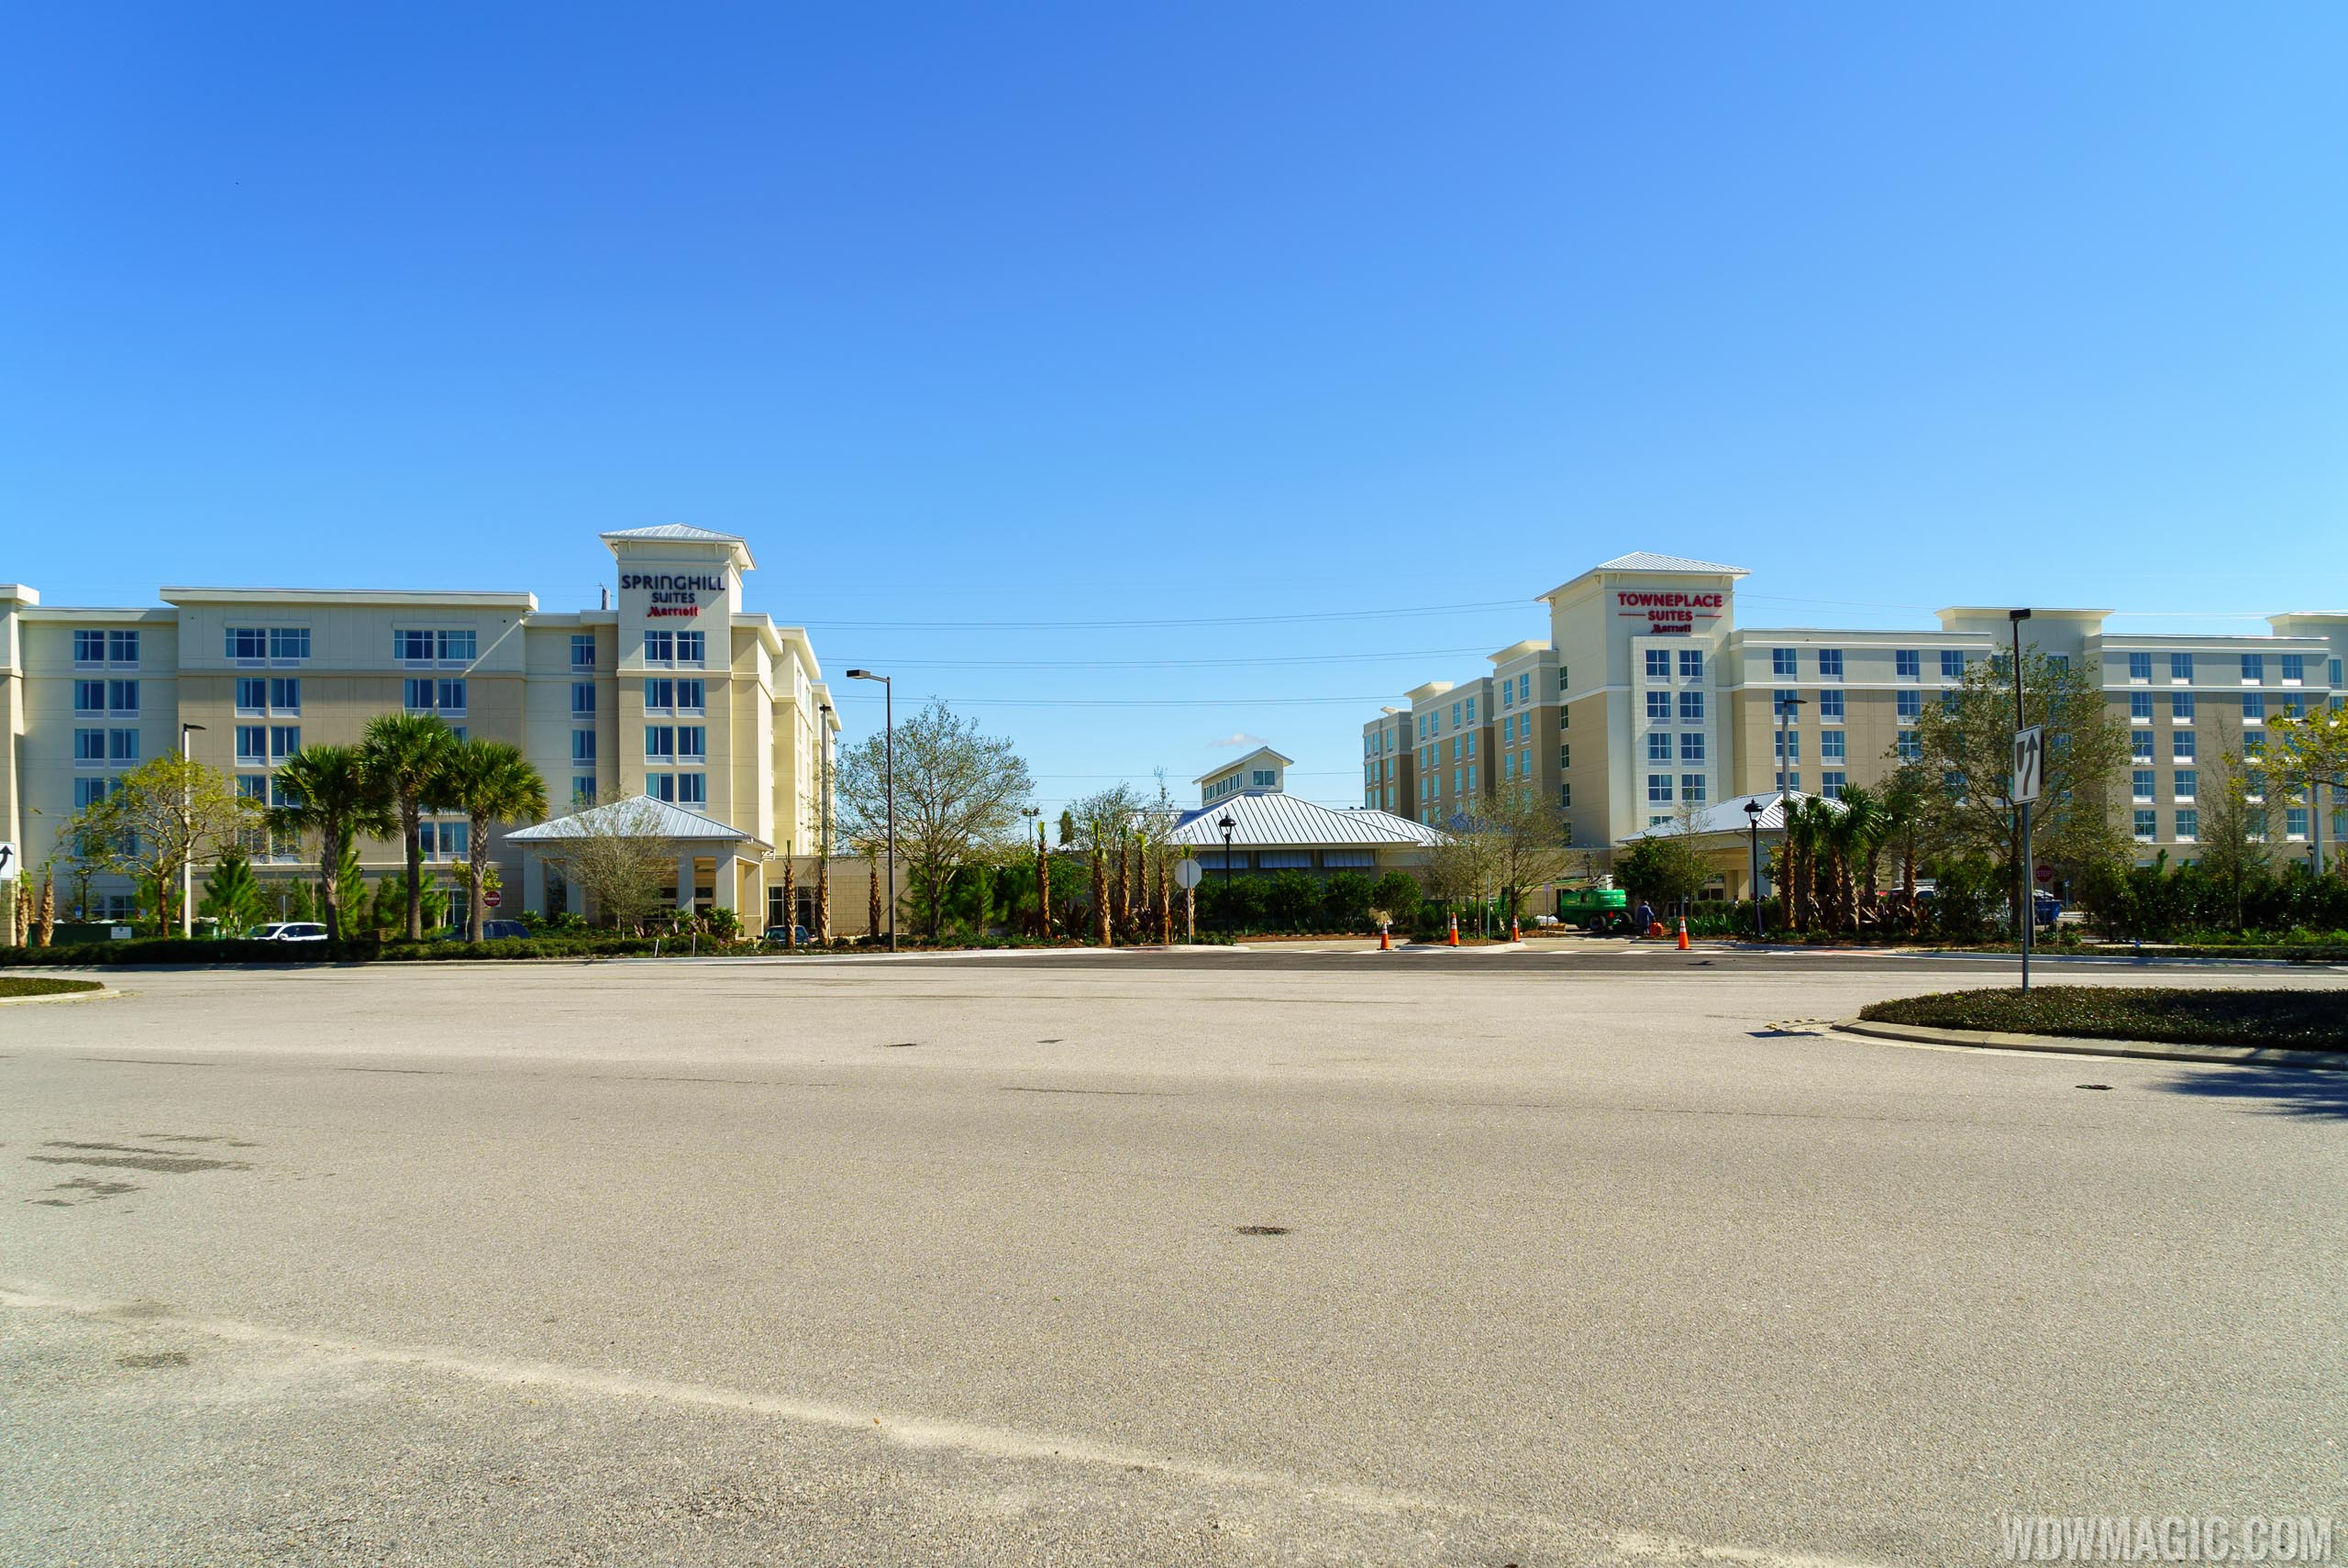 Marriott Hotels at Flamingo Crossings